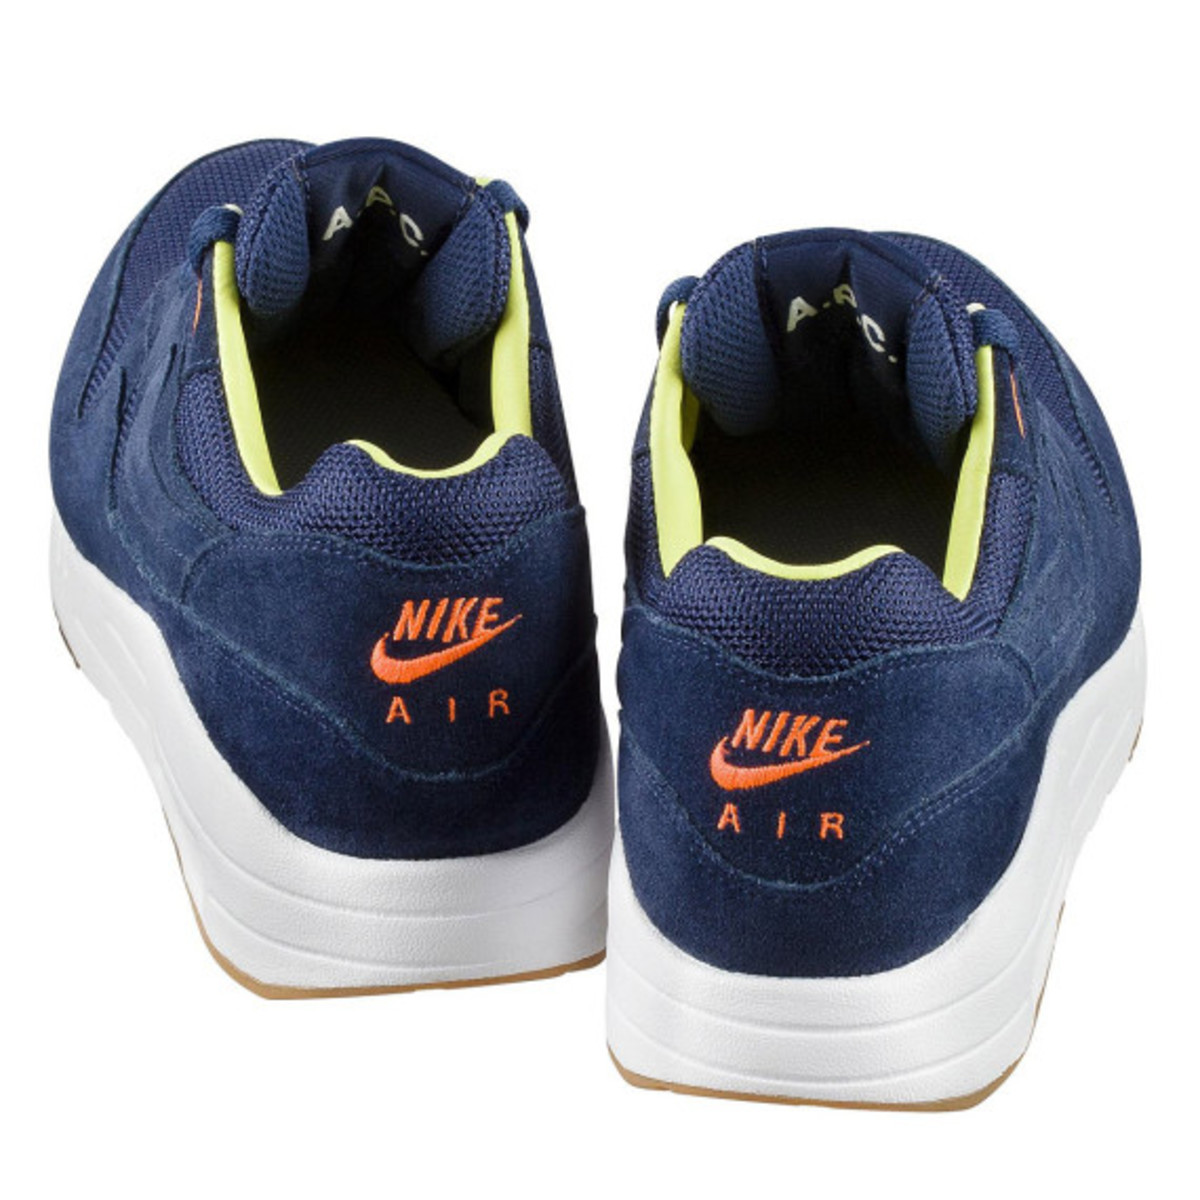 a-p-c-x-nike-air-maxim-1-available-now-14